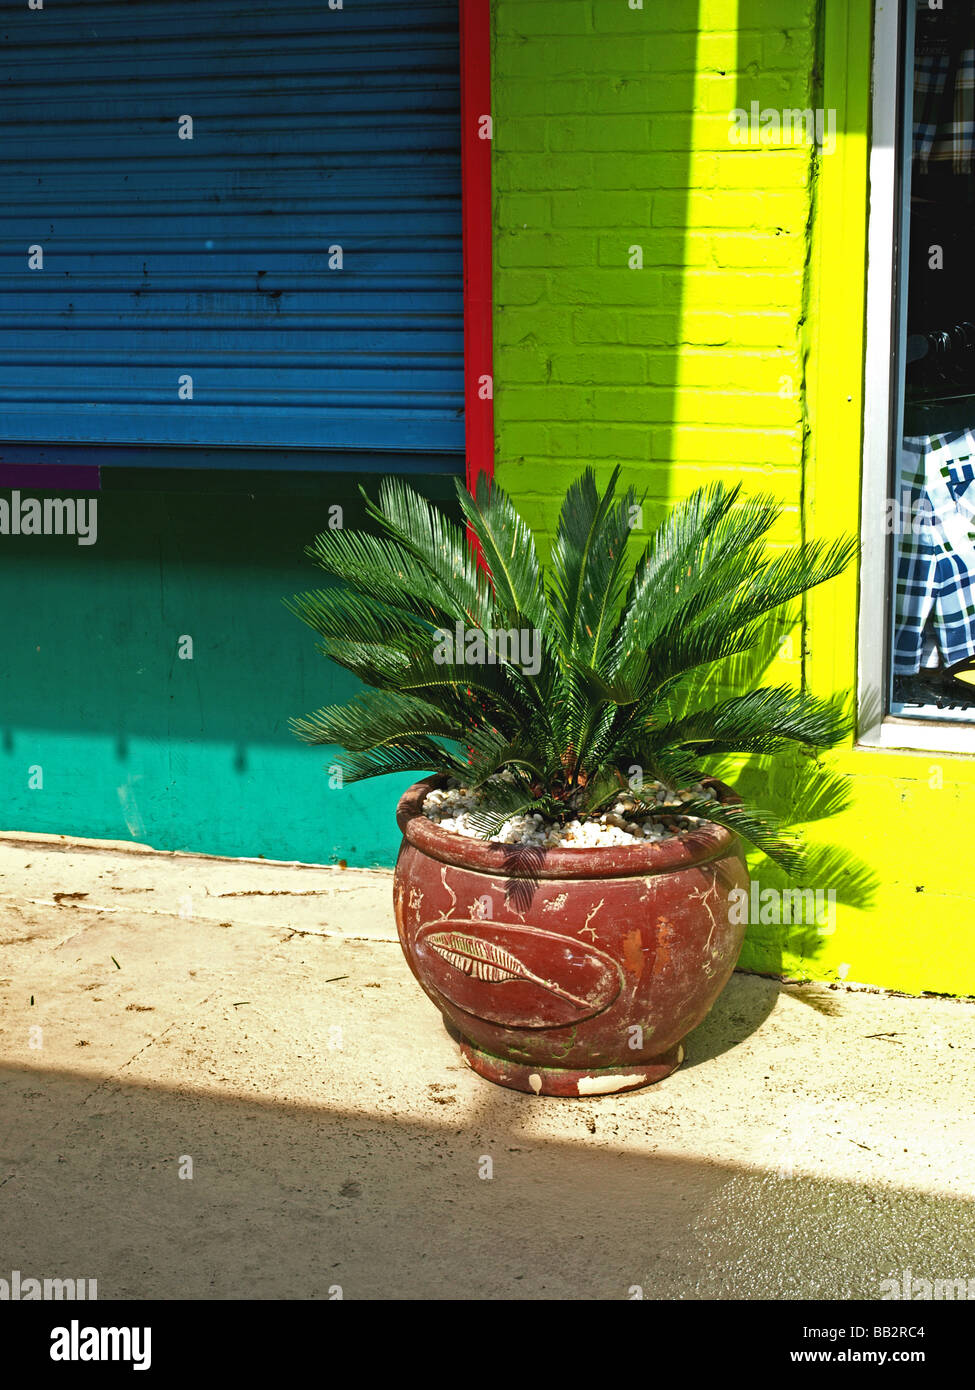 tropical plant in a pottery vessel next to colorful walls of tourquoise blue yellow on sidewalk - Stock Image